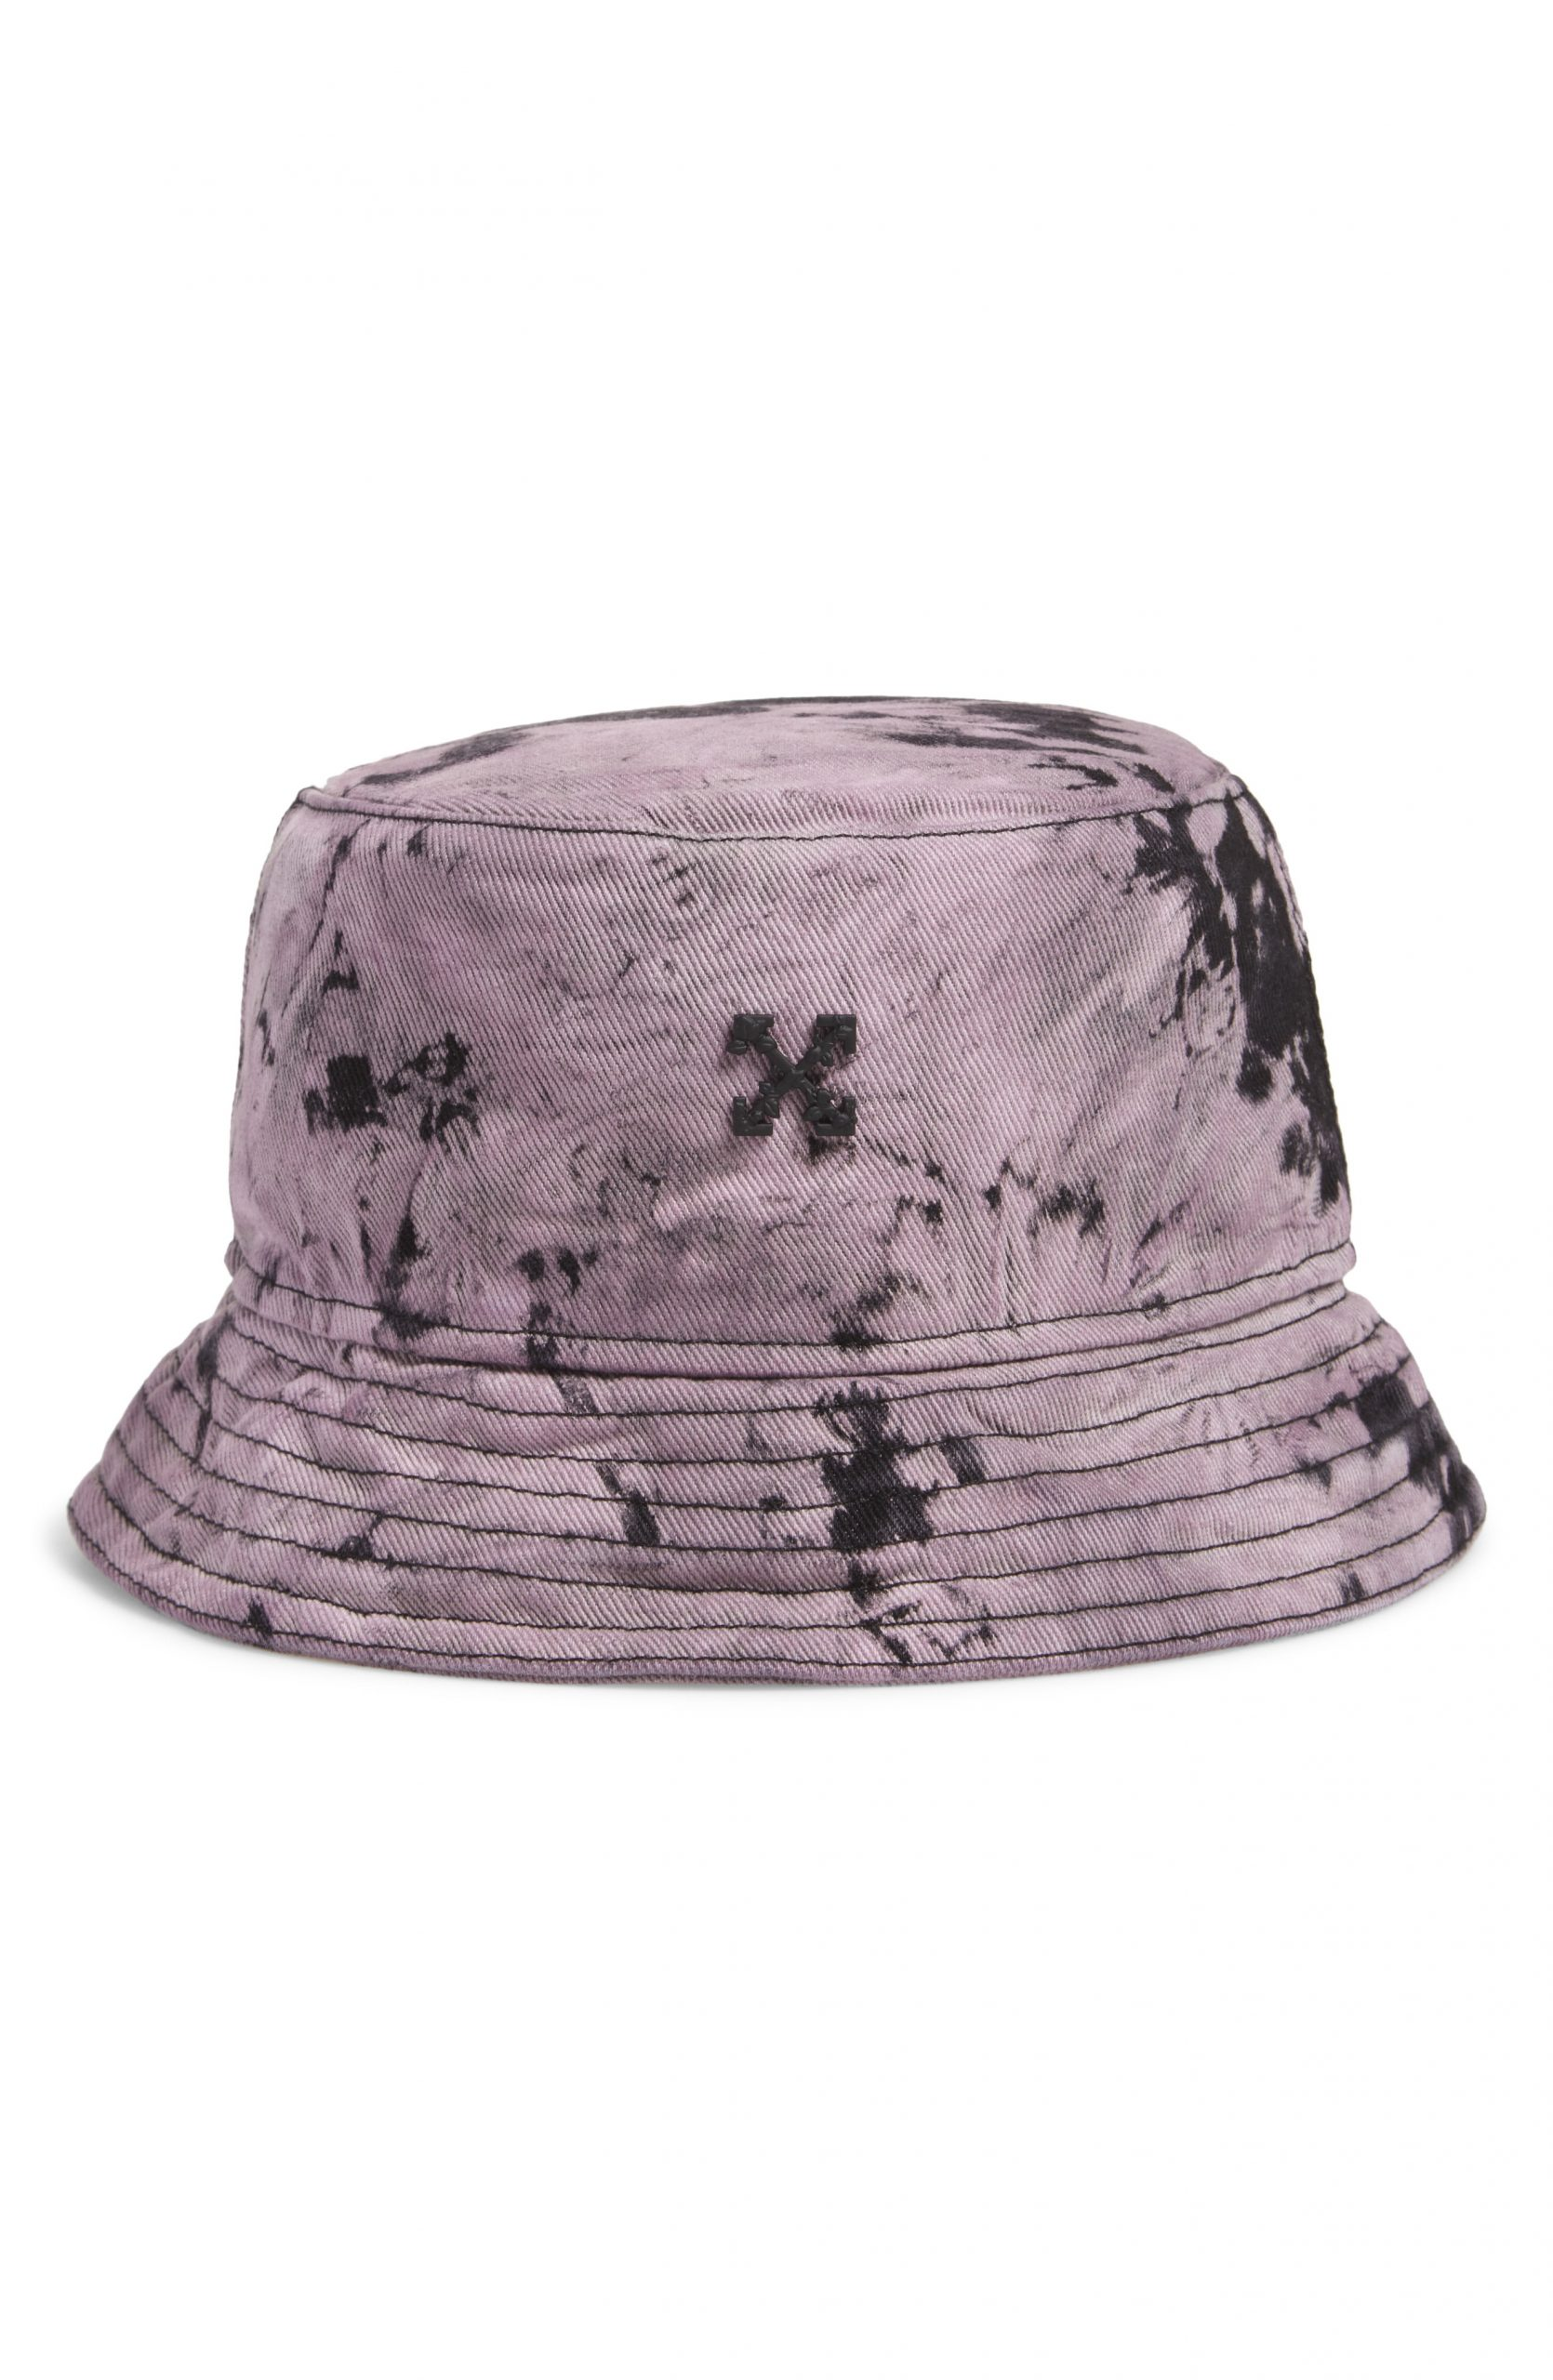 Men S Off White Tie Dye Cotton Denim Bucket Hat The Fashionisto